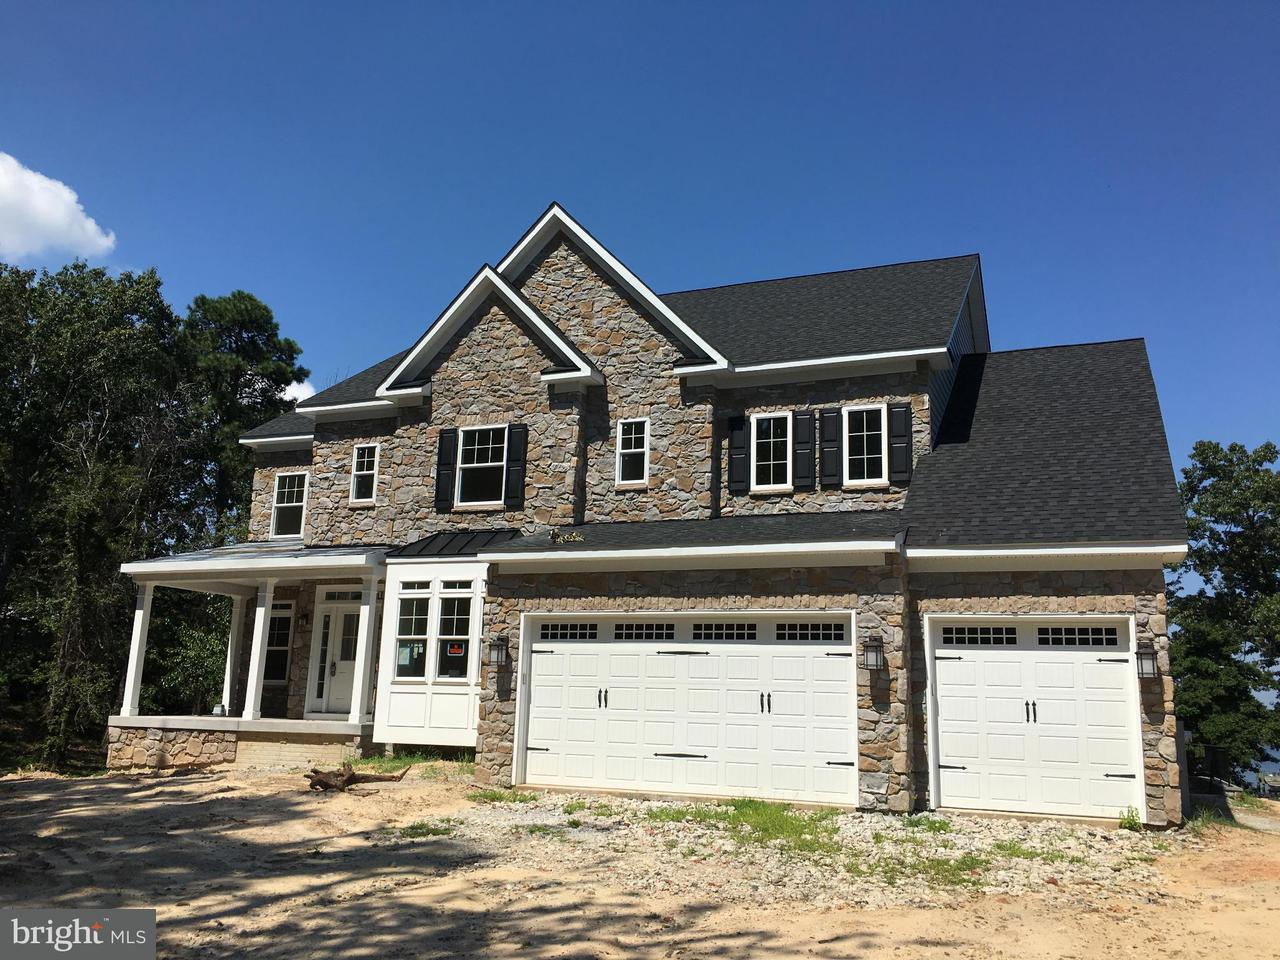 Single Family Home for Sale at 7678 COLONIAL BEACH Road 7678 COLONIAL BEACH Road Pasadena, Maryland 21122 United States